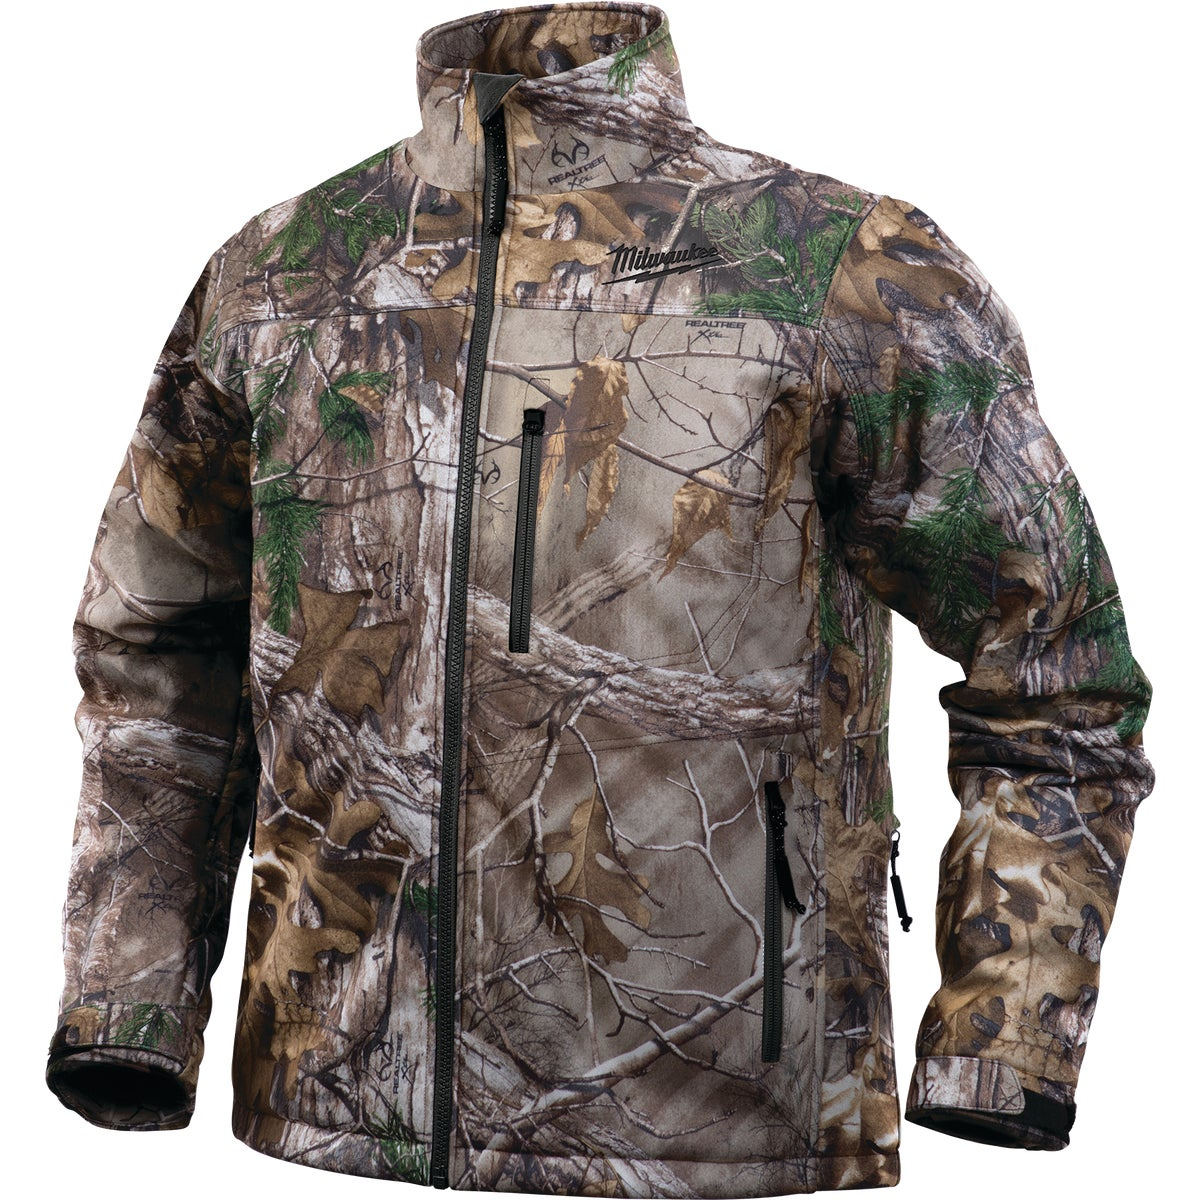 M12 2X CAMO HEATD JACKET - 2343-2X by Milwaukee Elec Tool